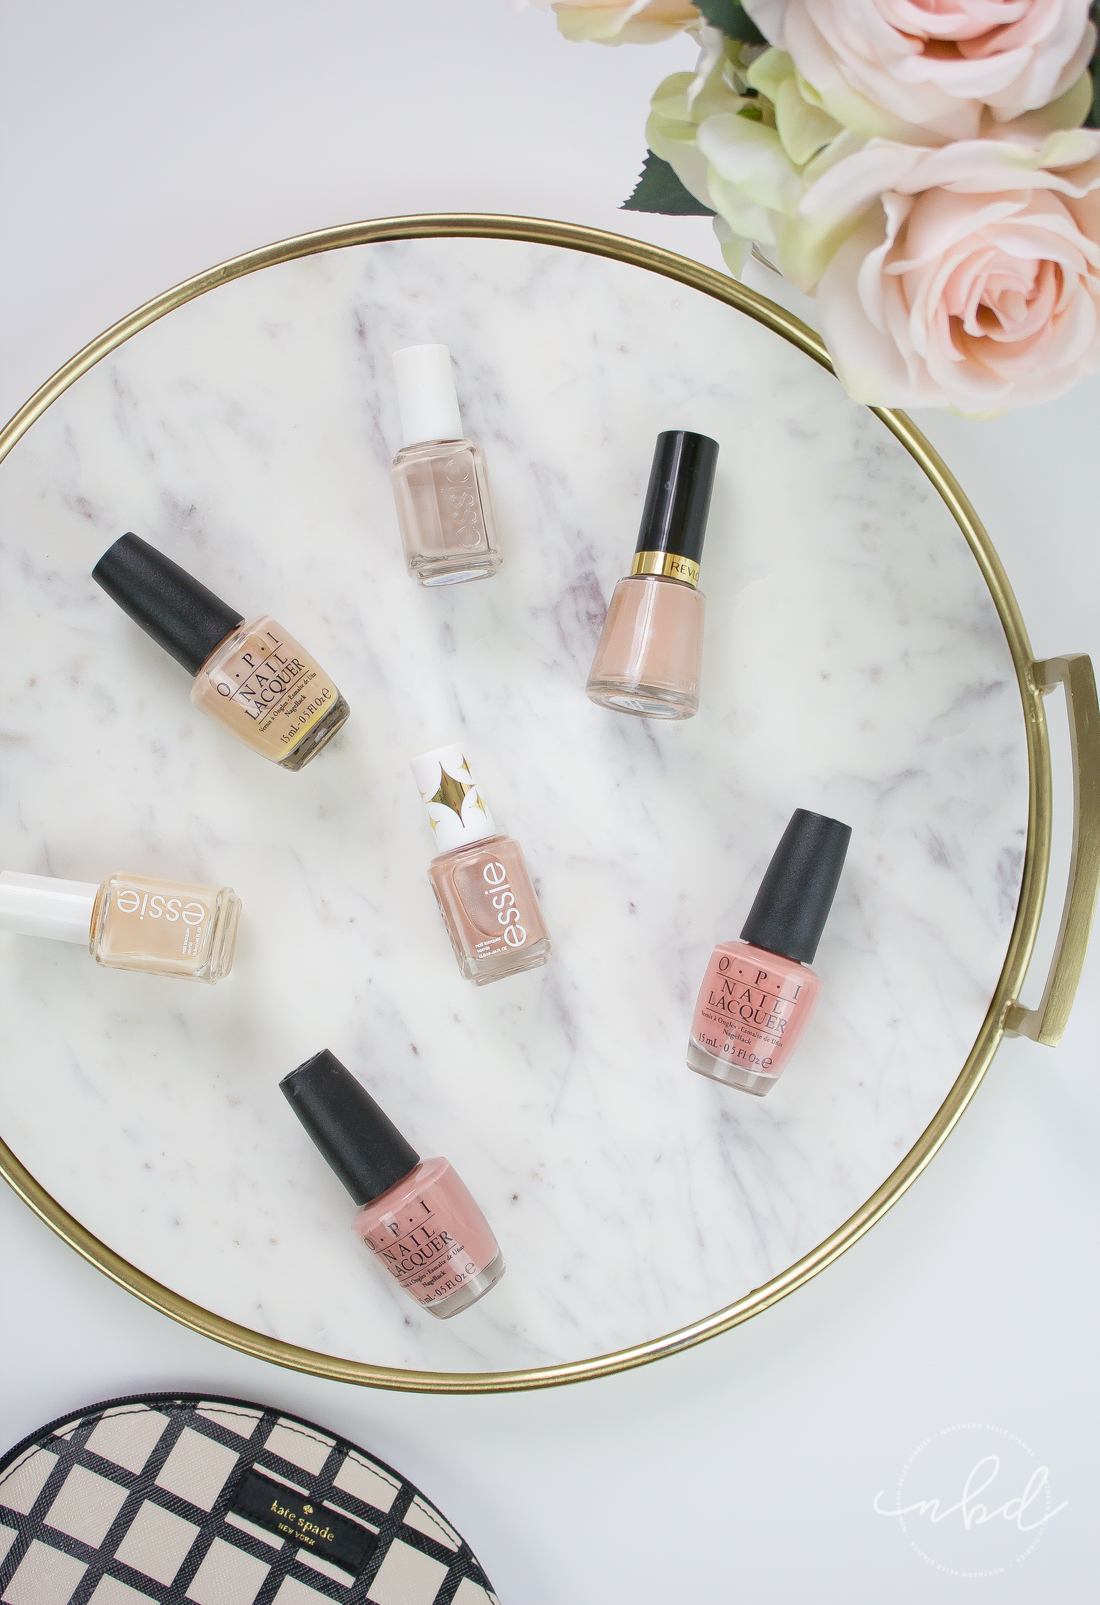 My Favorite Nude Nails for Golden Skin Tones